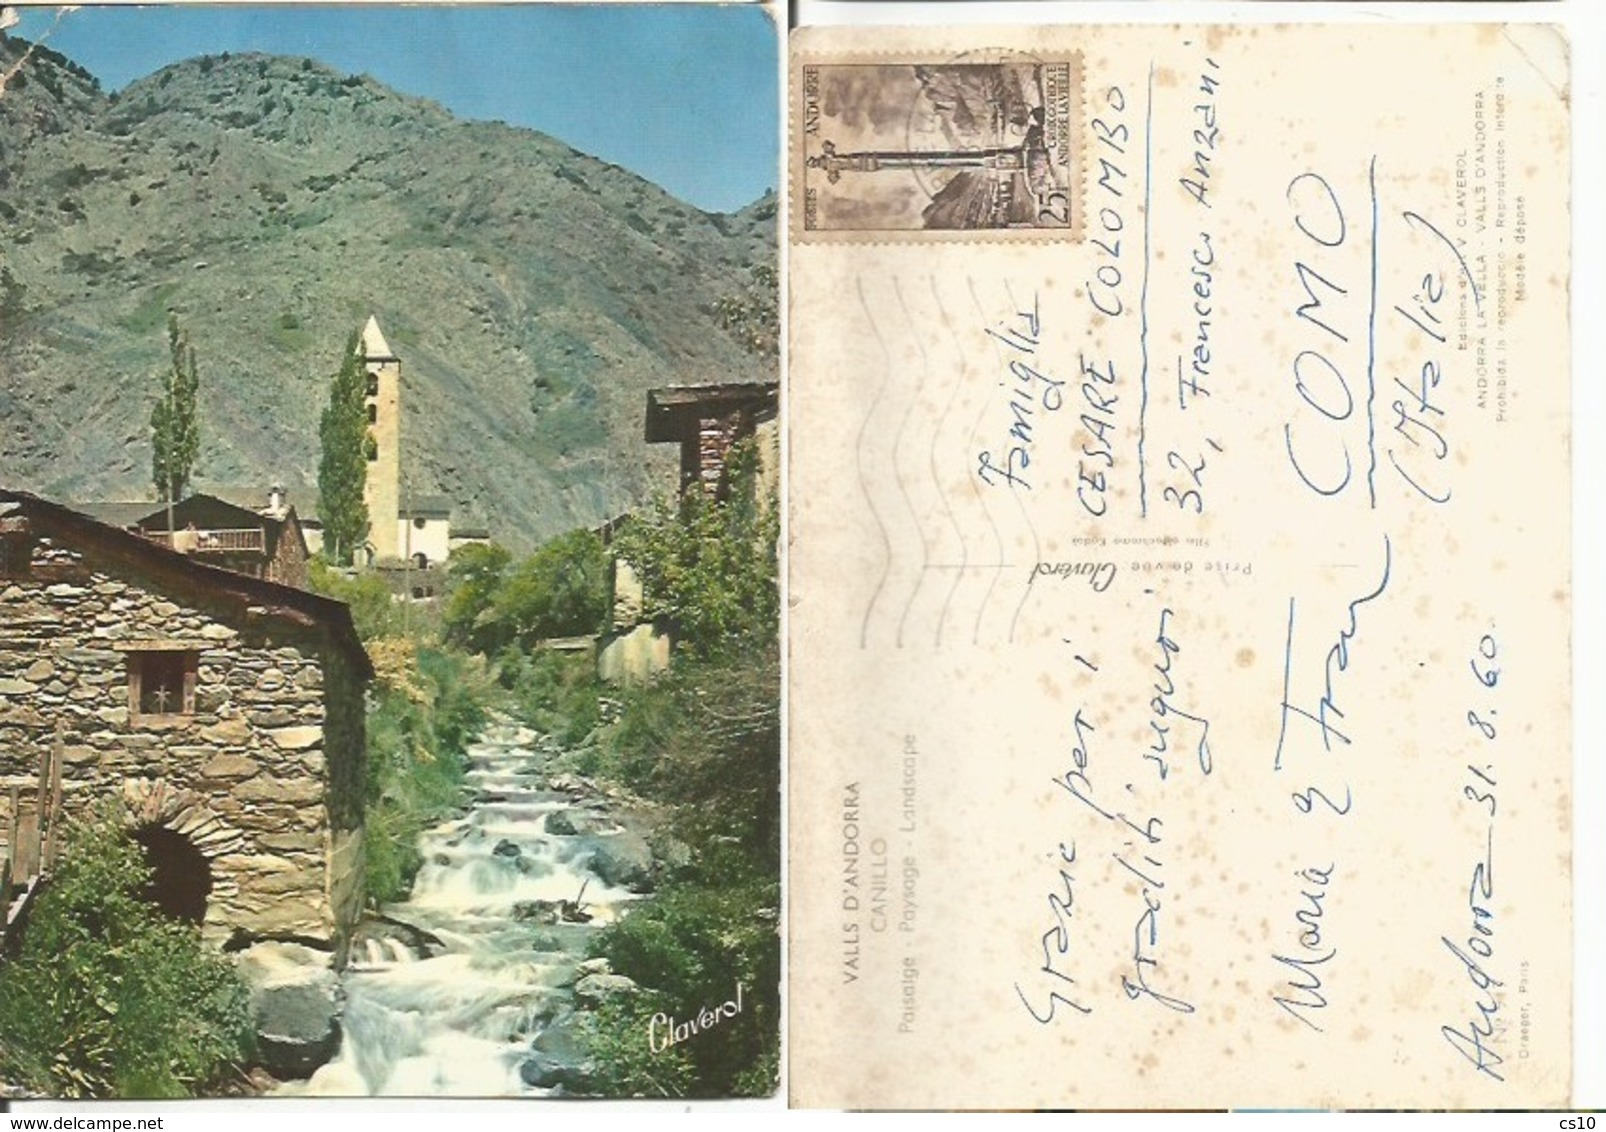 Valls D'Andorra Canillo - The Church Typical Landscape Color Pcard 31aug1960 X Italy With Regular F25 Solo - Andorra